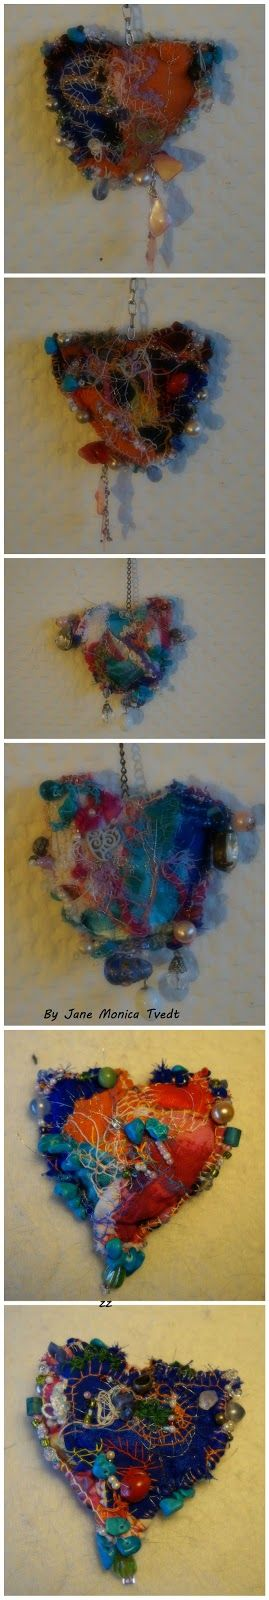 "Jane Monica Tvedt - Empire of heart: ""crazy quilting"" - Chakra crystal fiber heart -LOVE & Peace"